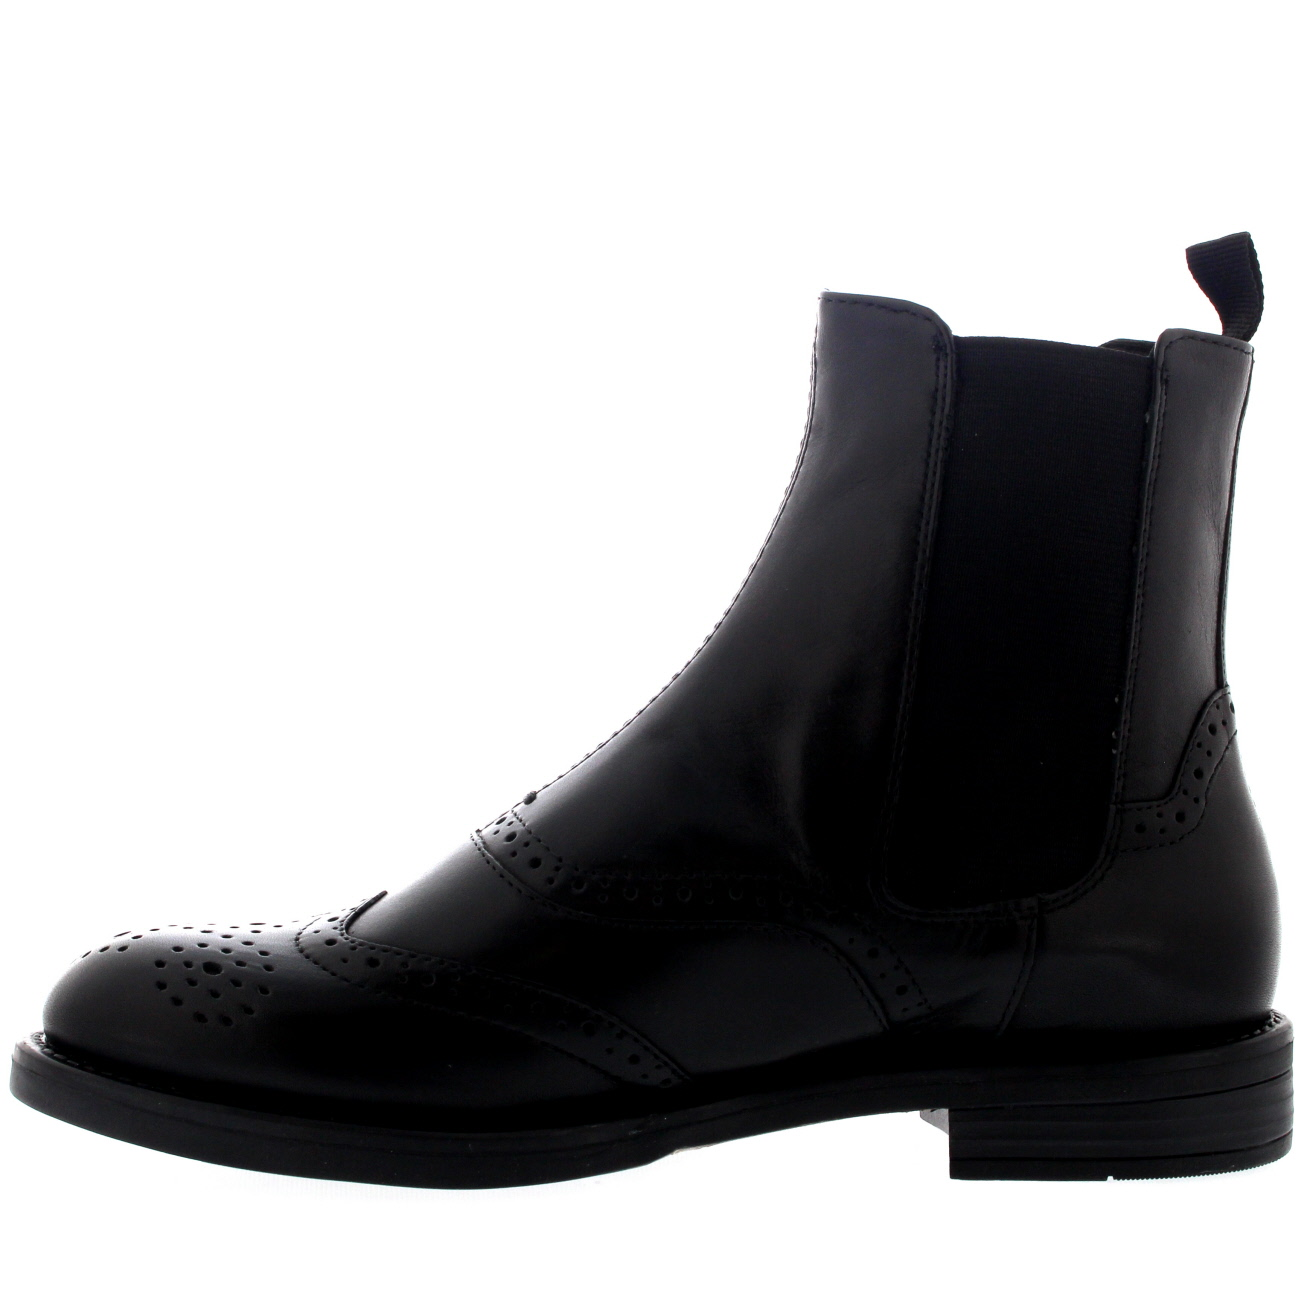 b23df5dab83 Ladies Vagabond Amina Office Leather Brogue Smart Ankle Chelsea Boots All  Sizes